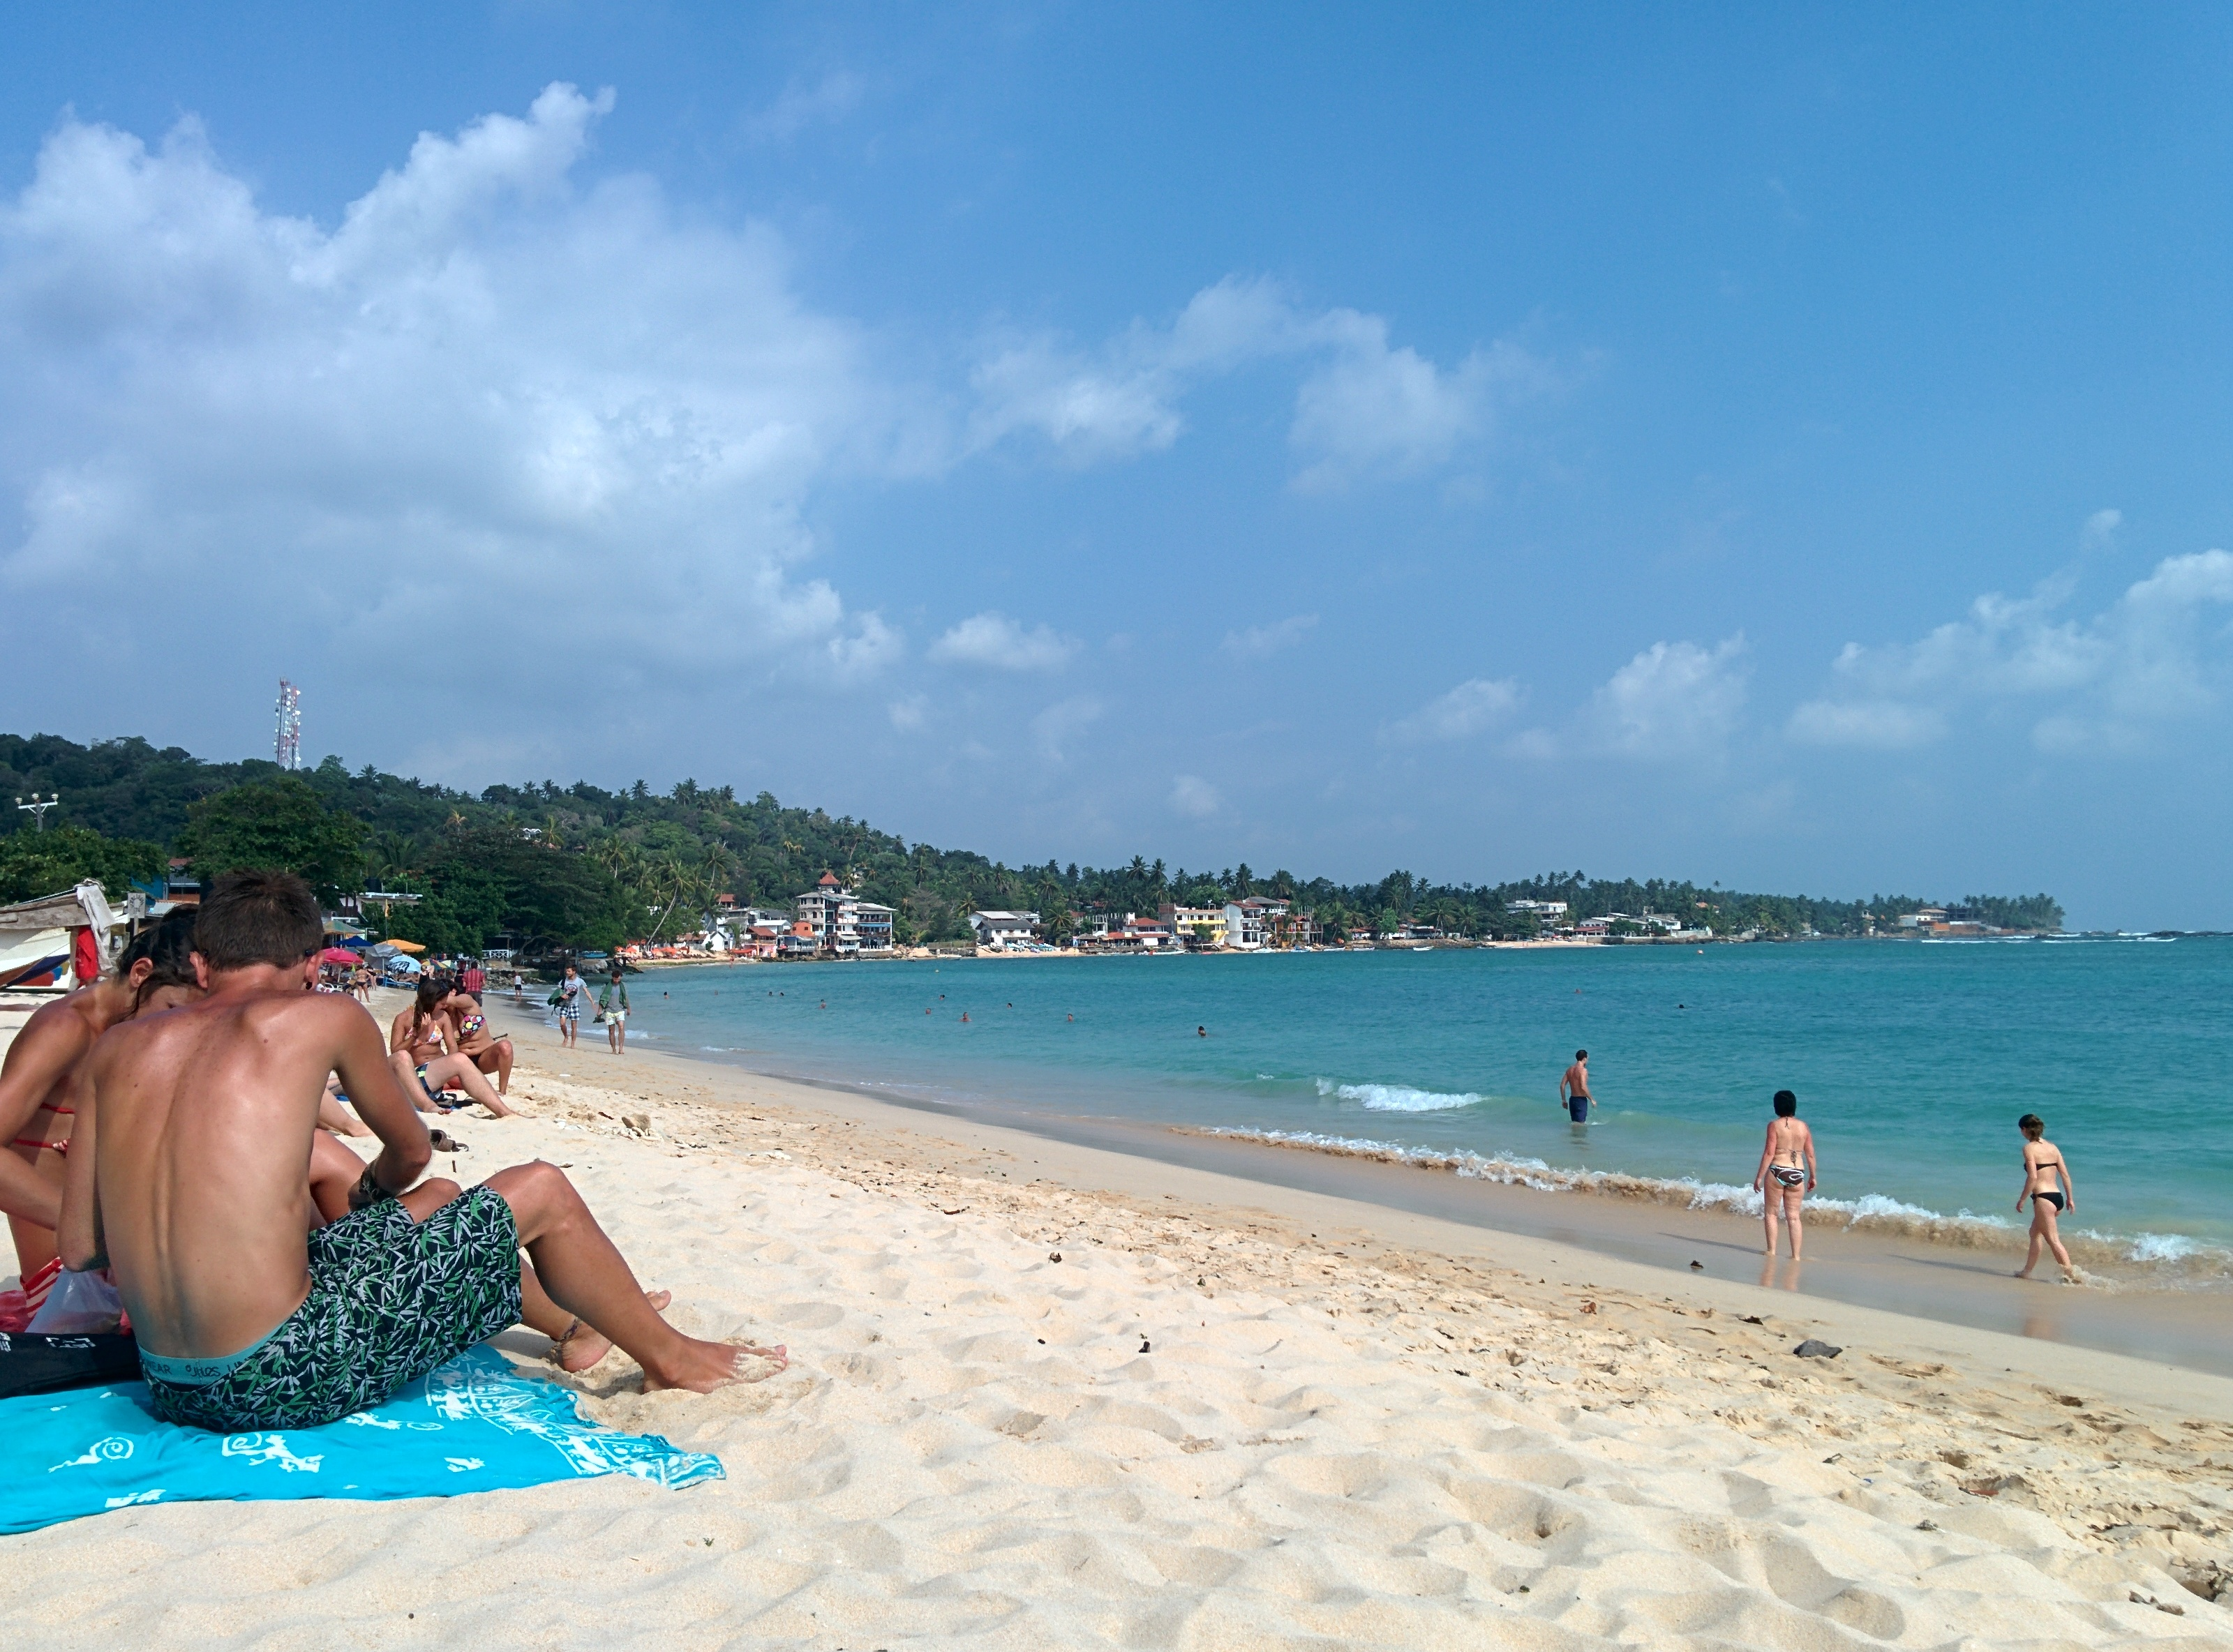 The waters are better for bathing at Unawatuna than Tangalla